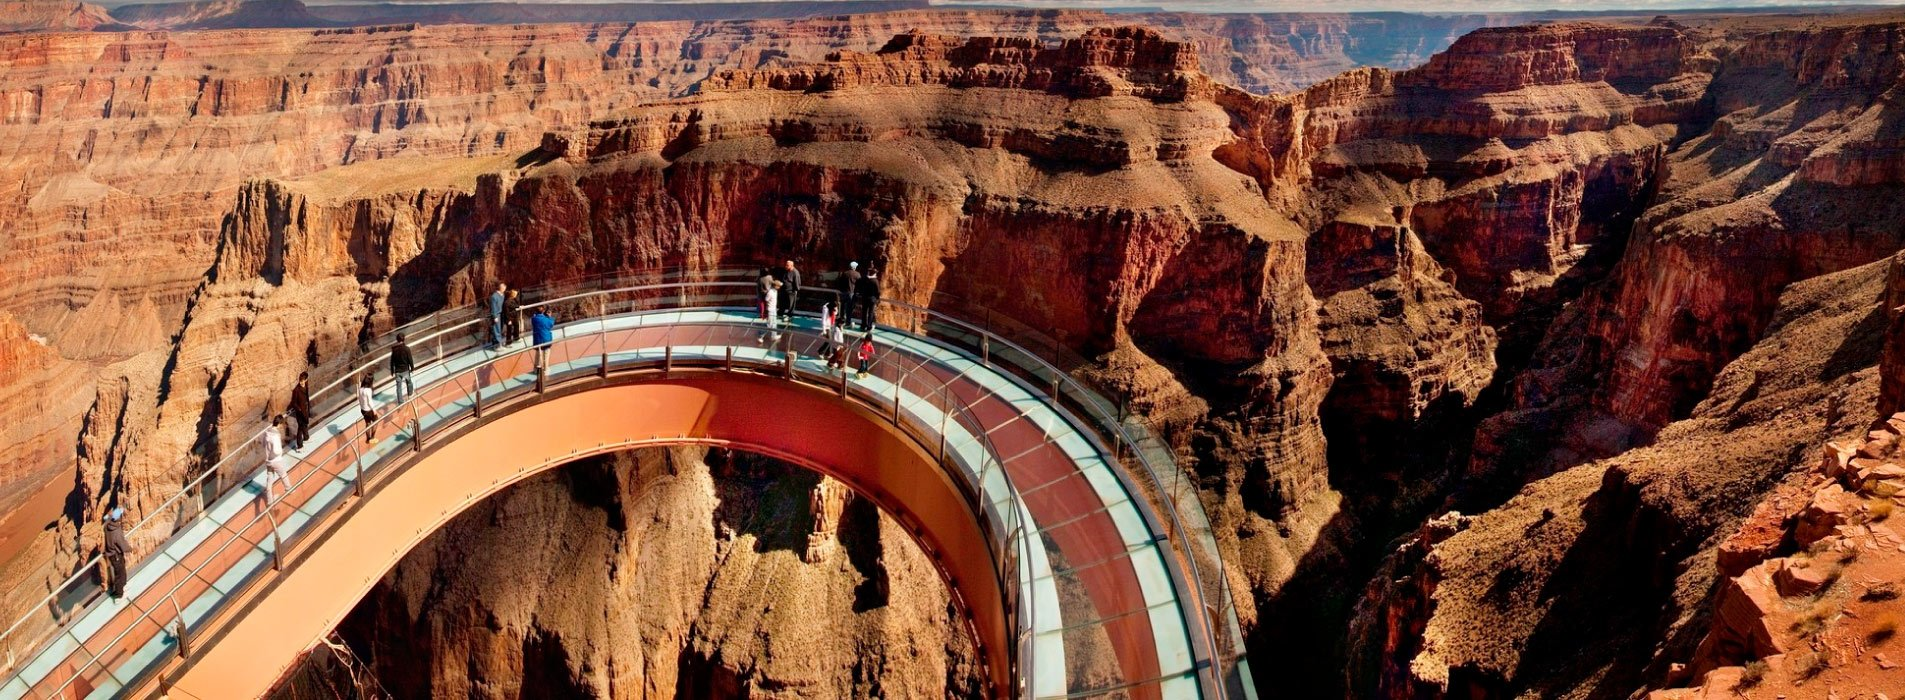 Guests standing on the Skywalk Bridge at the Grand Canyon West Rim.